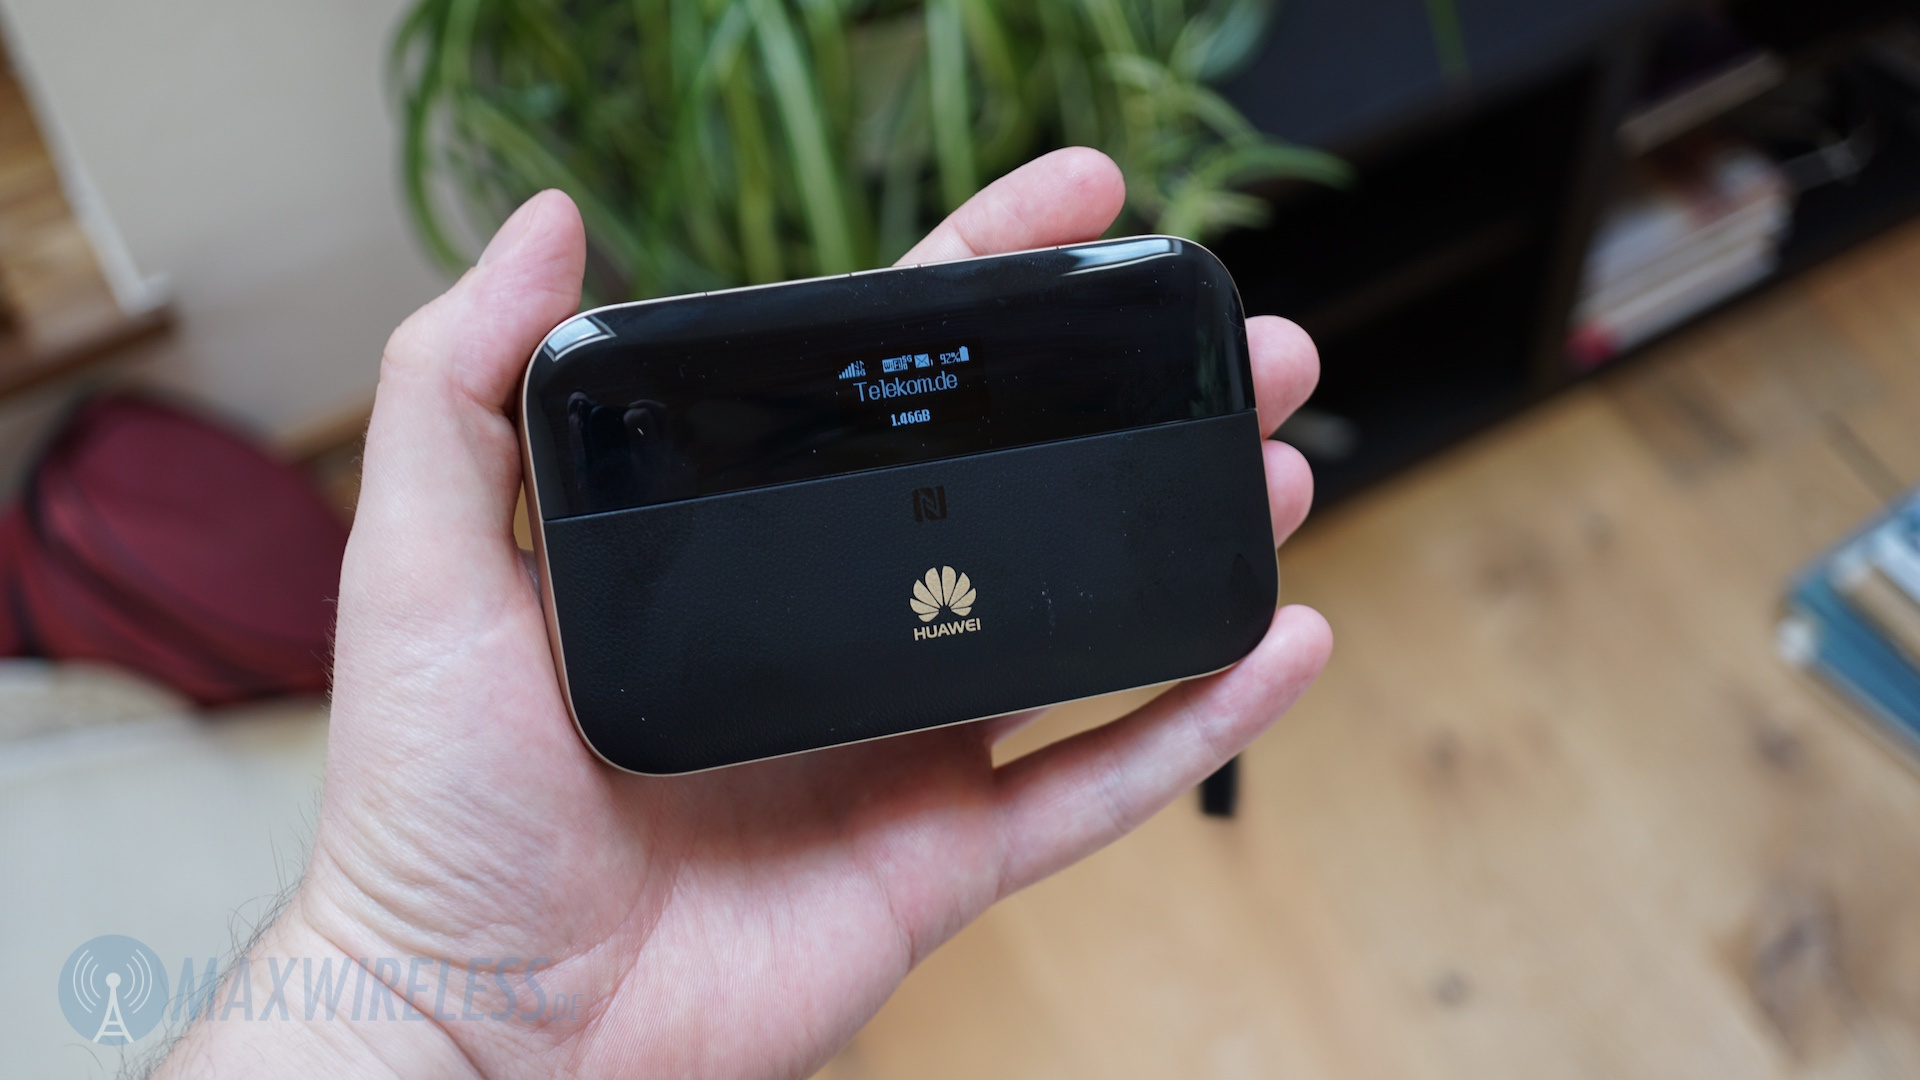 Test: Huawei E5885 Mobile WiFi Pro2 | maxwireless de